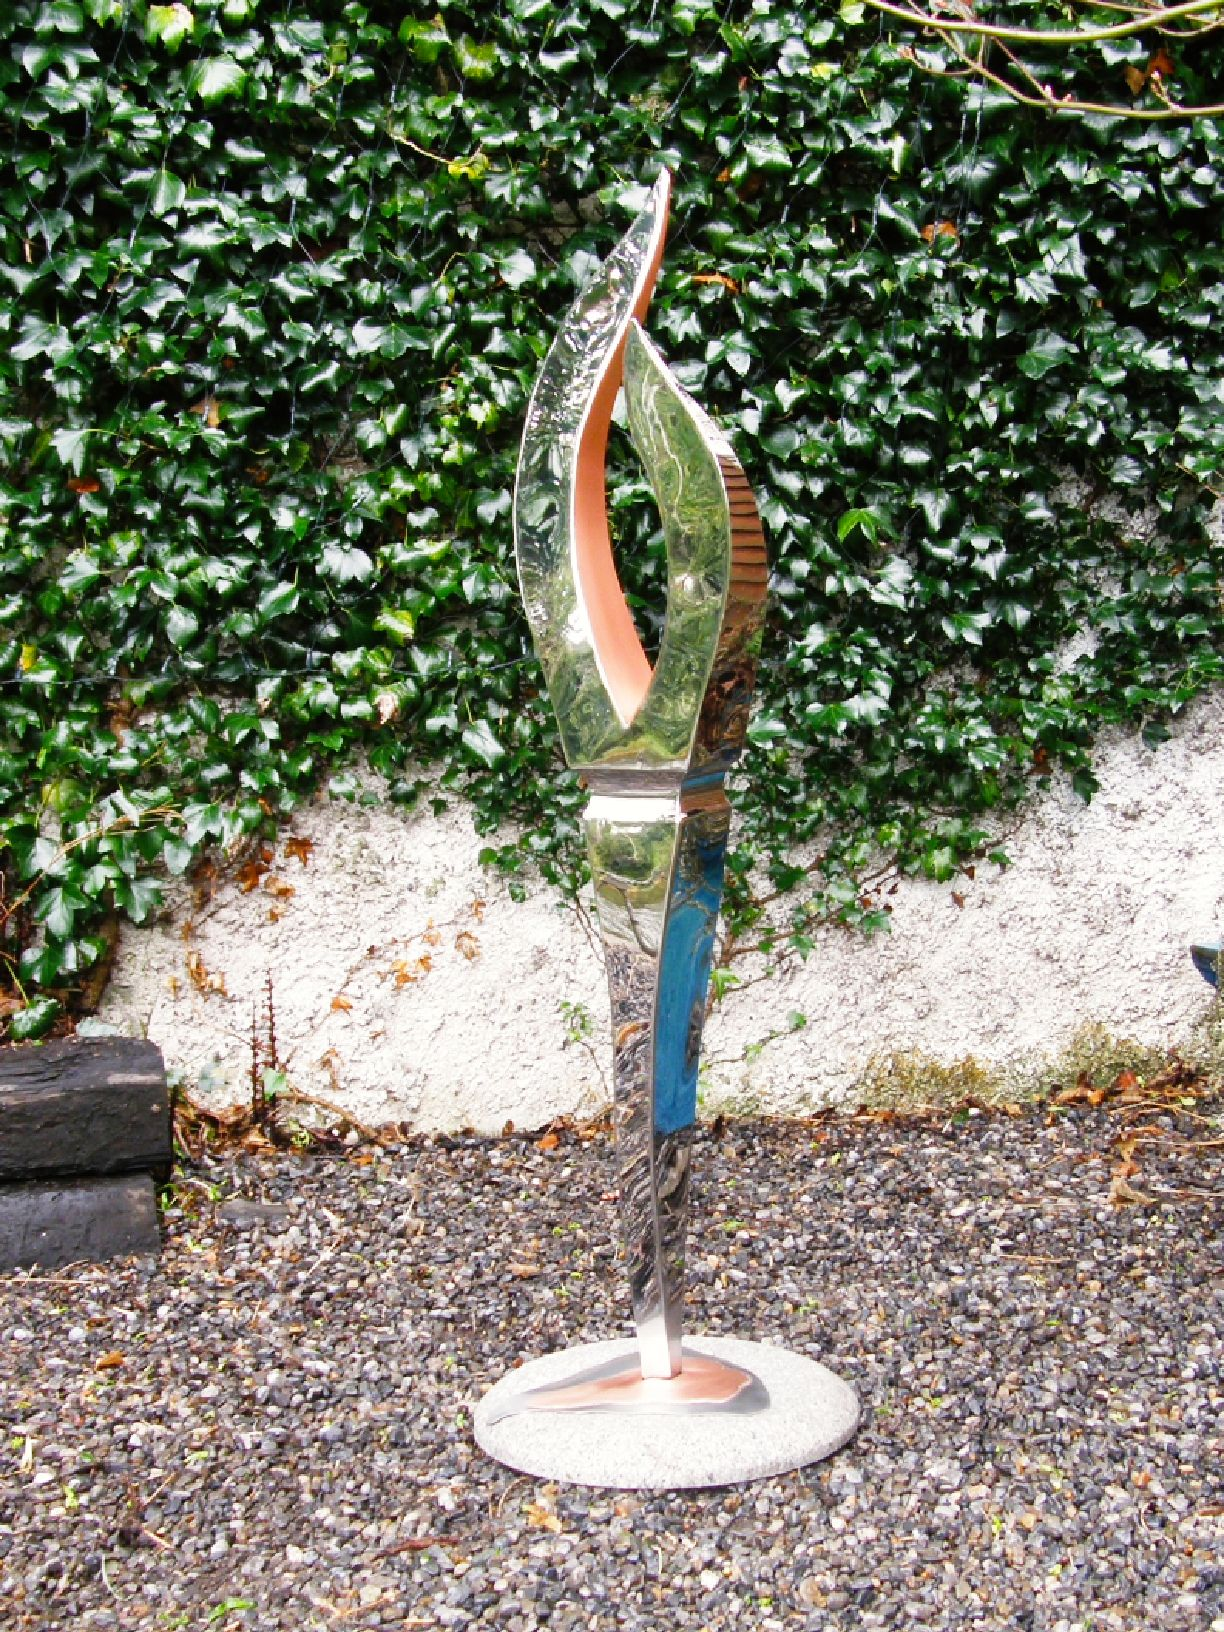 Rushlight on Pebbles - Handmade in Stainless Steel & Copper on Granite Base - Stands 130cm